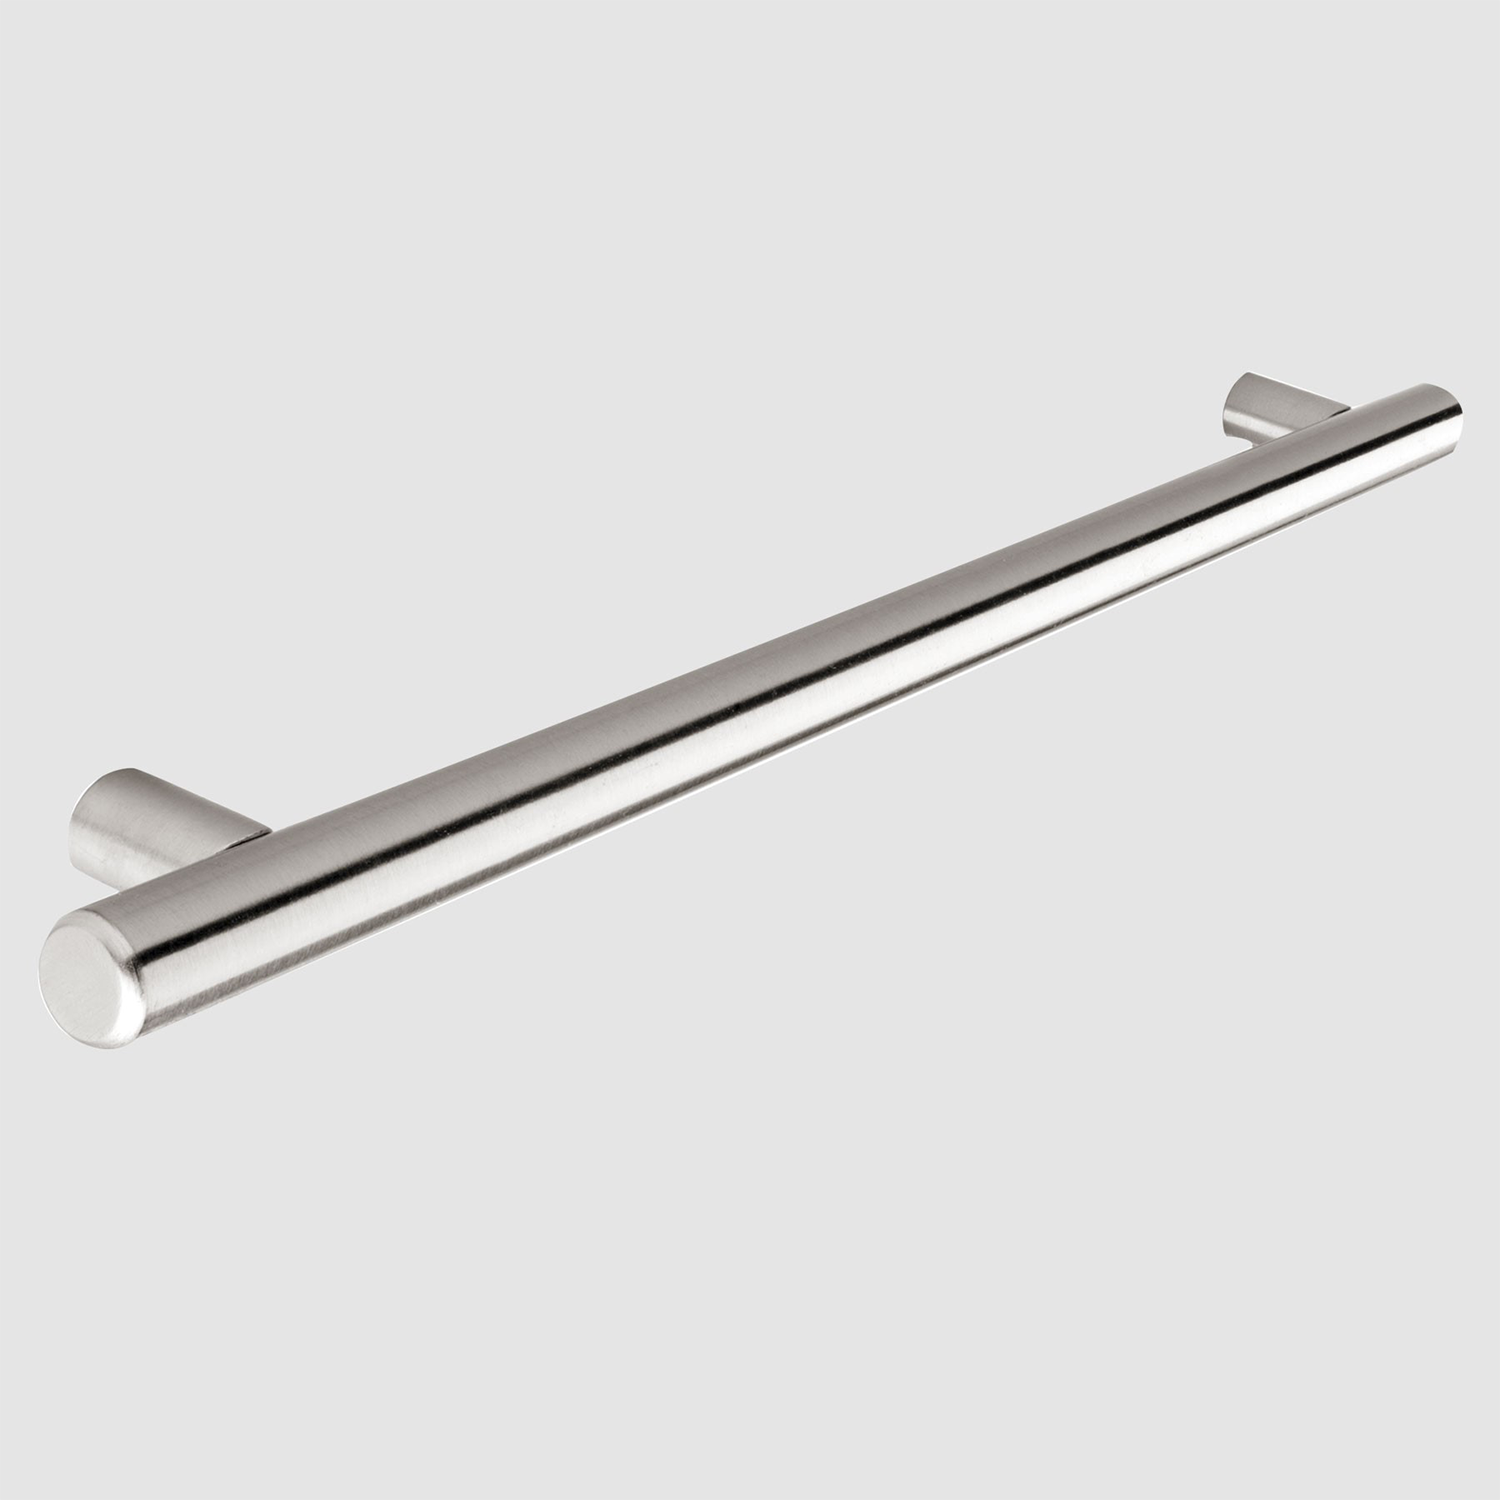 SS72.797.737 Bar Handle 12mm Dia Stainless Steel